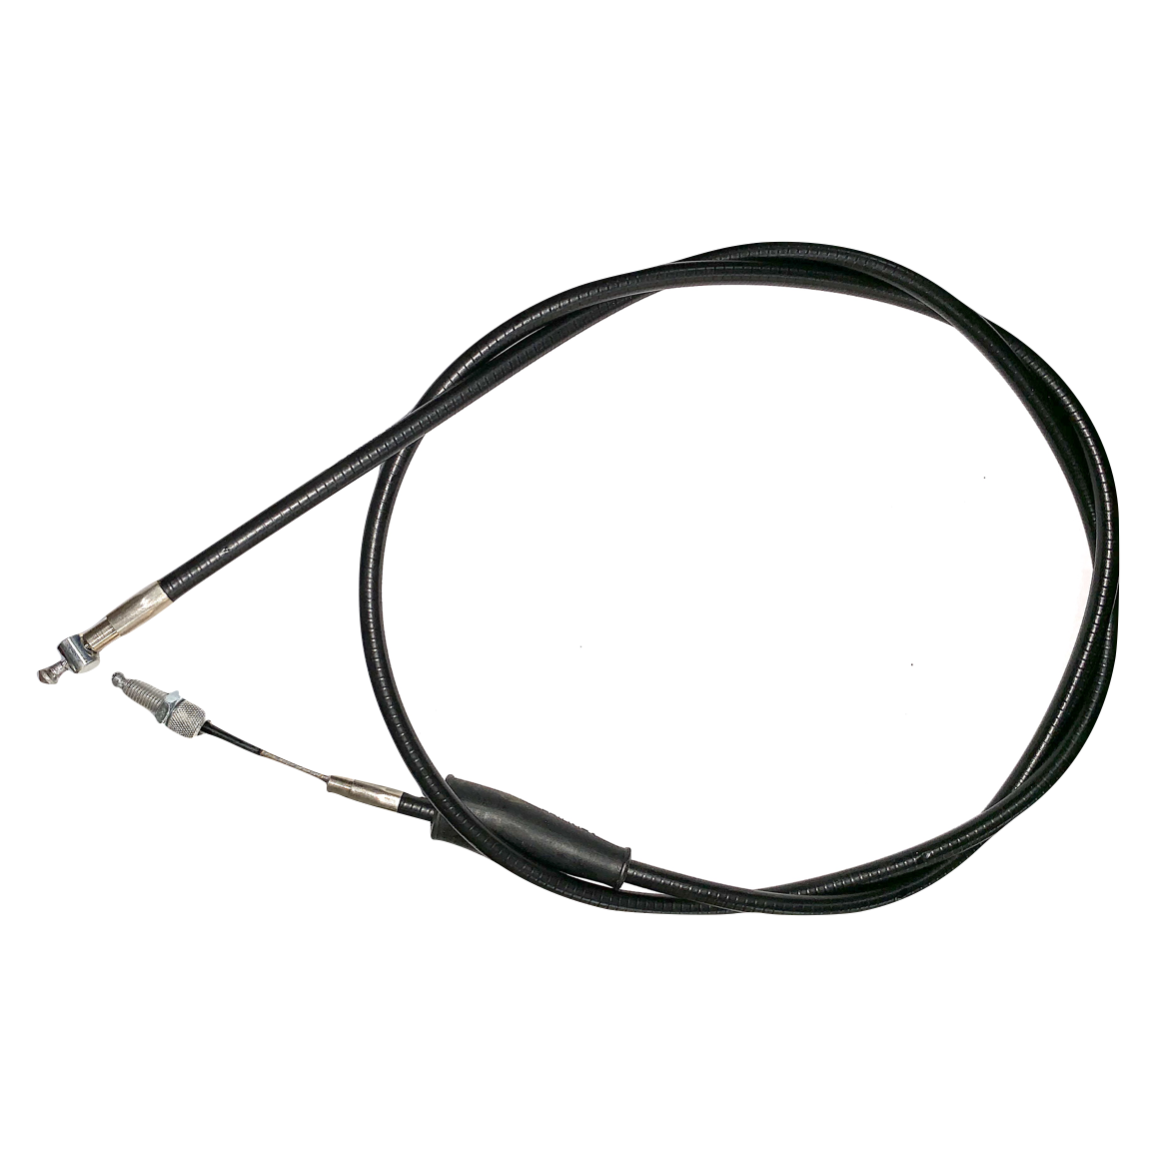 VENHILL FEATHERLIGHT CLUTCH CABLE FOR OLD ENGLISH DOHERTY LEVER - BLACK